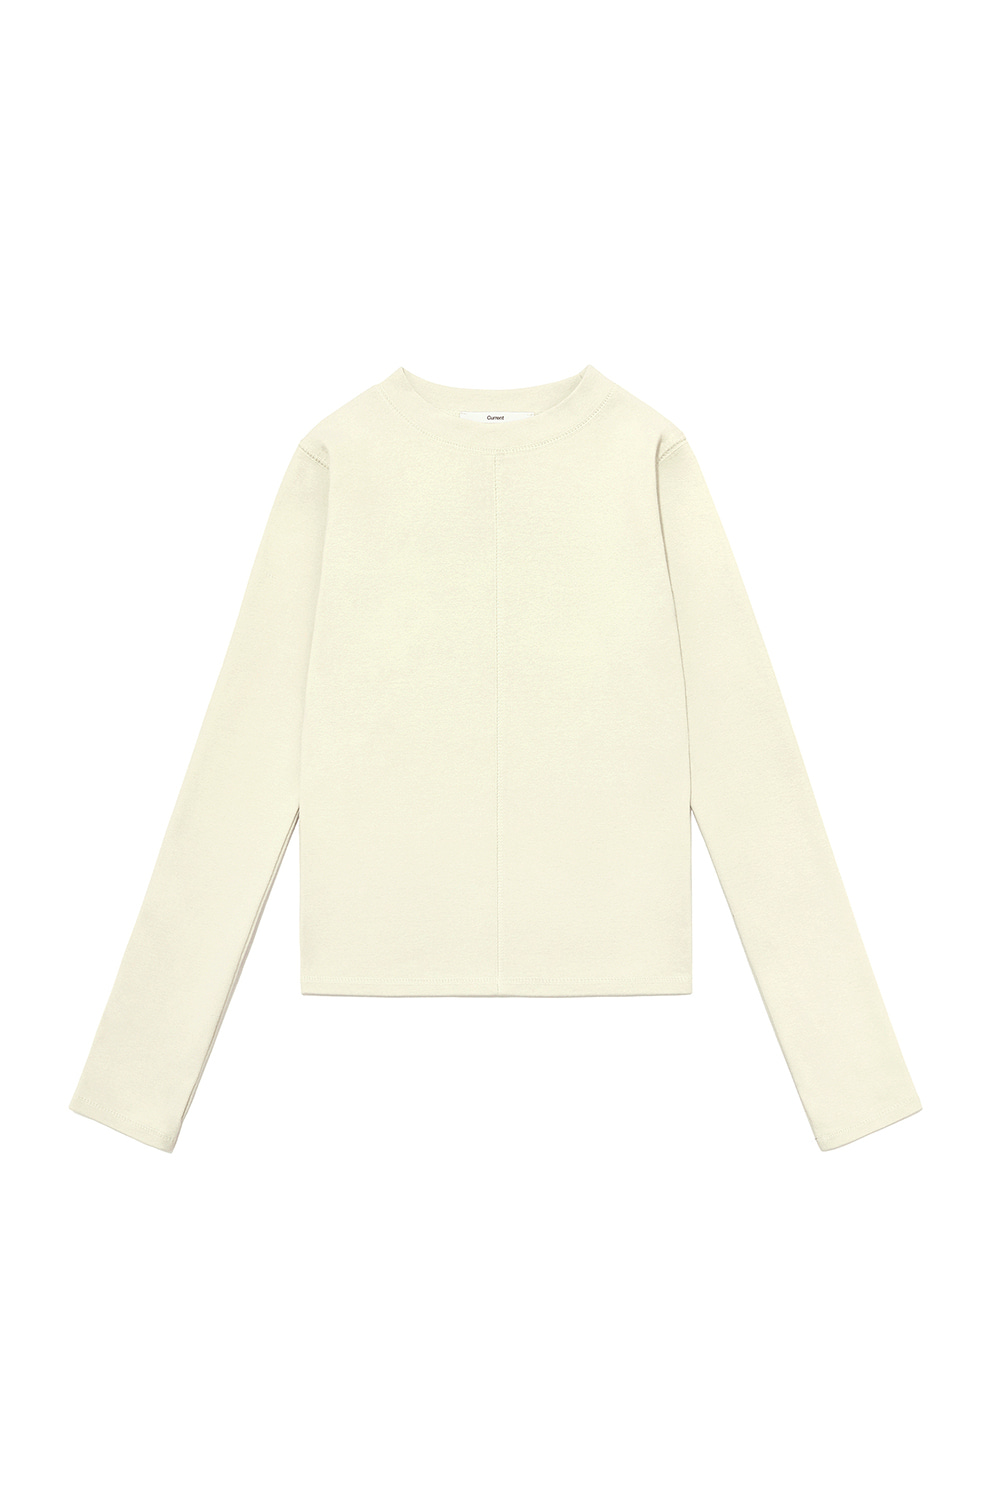 Long sleeve Tee Women [Ivory]